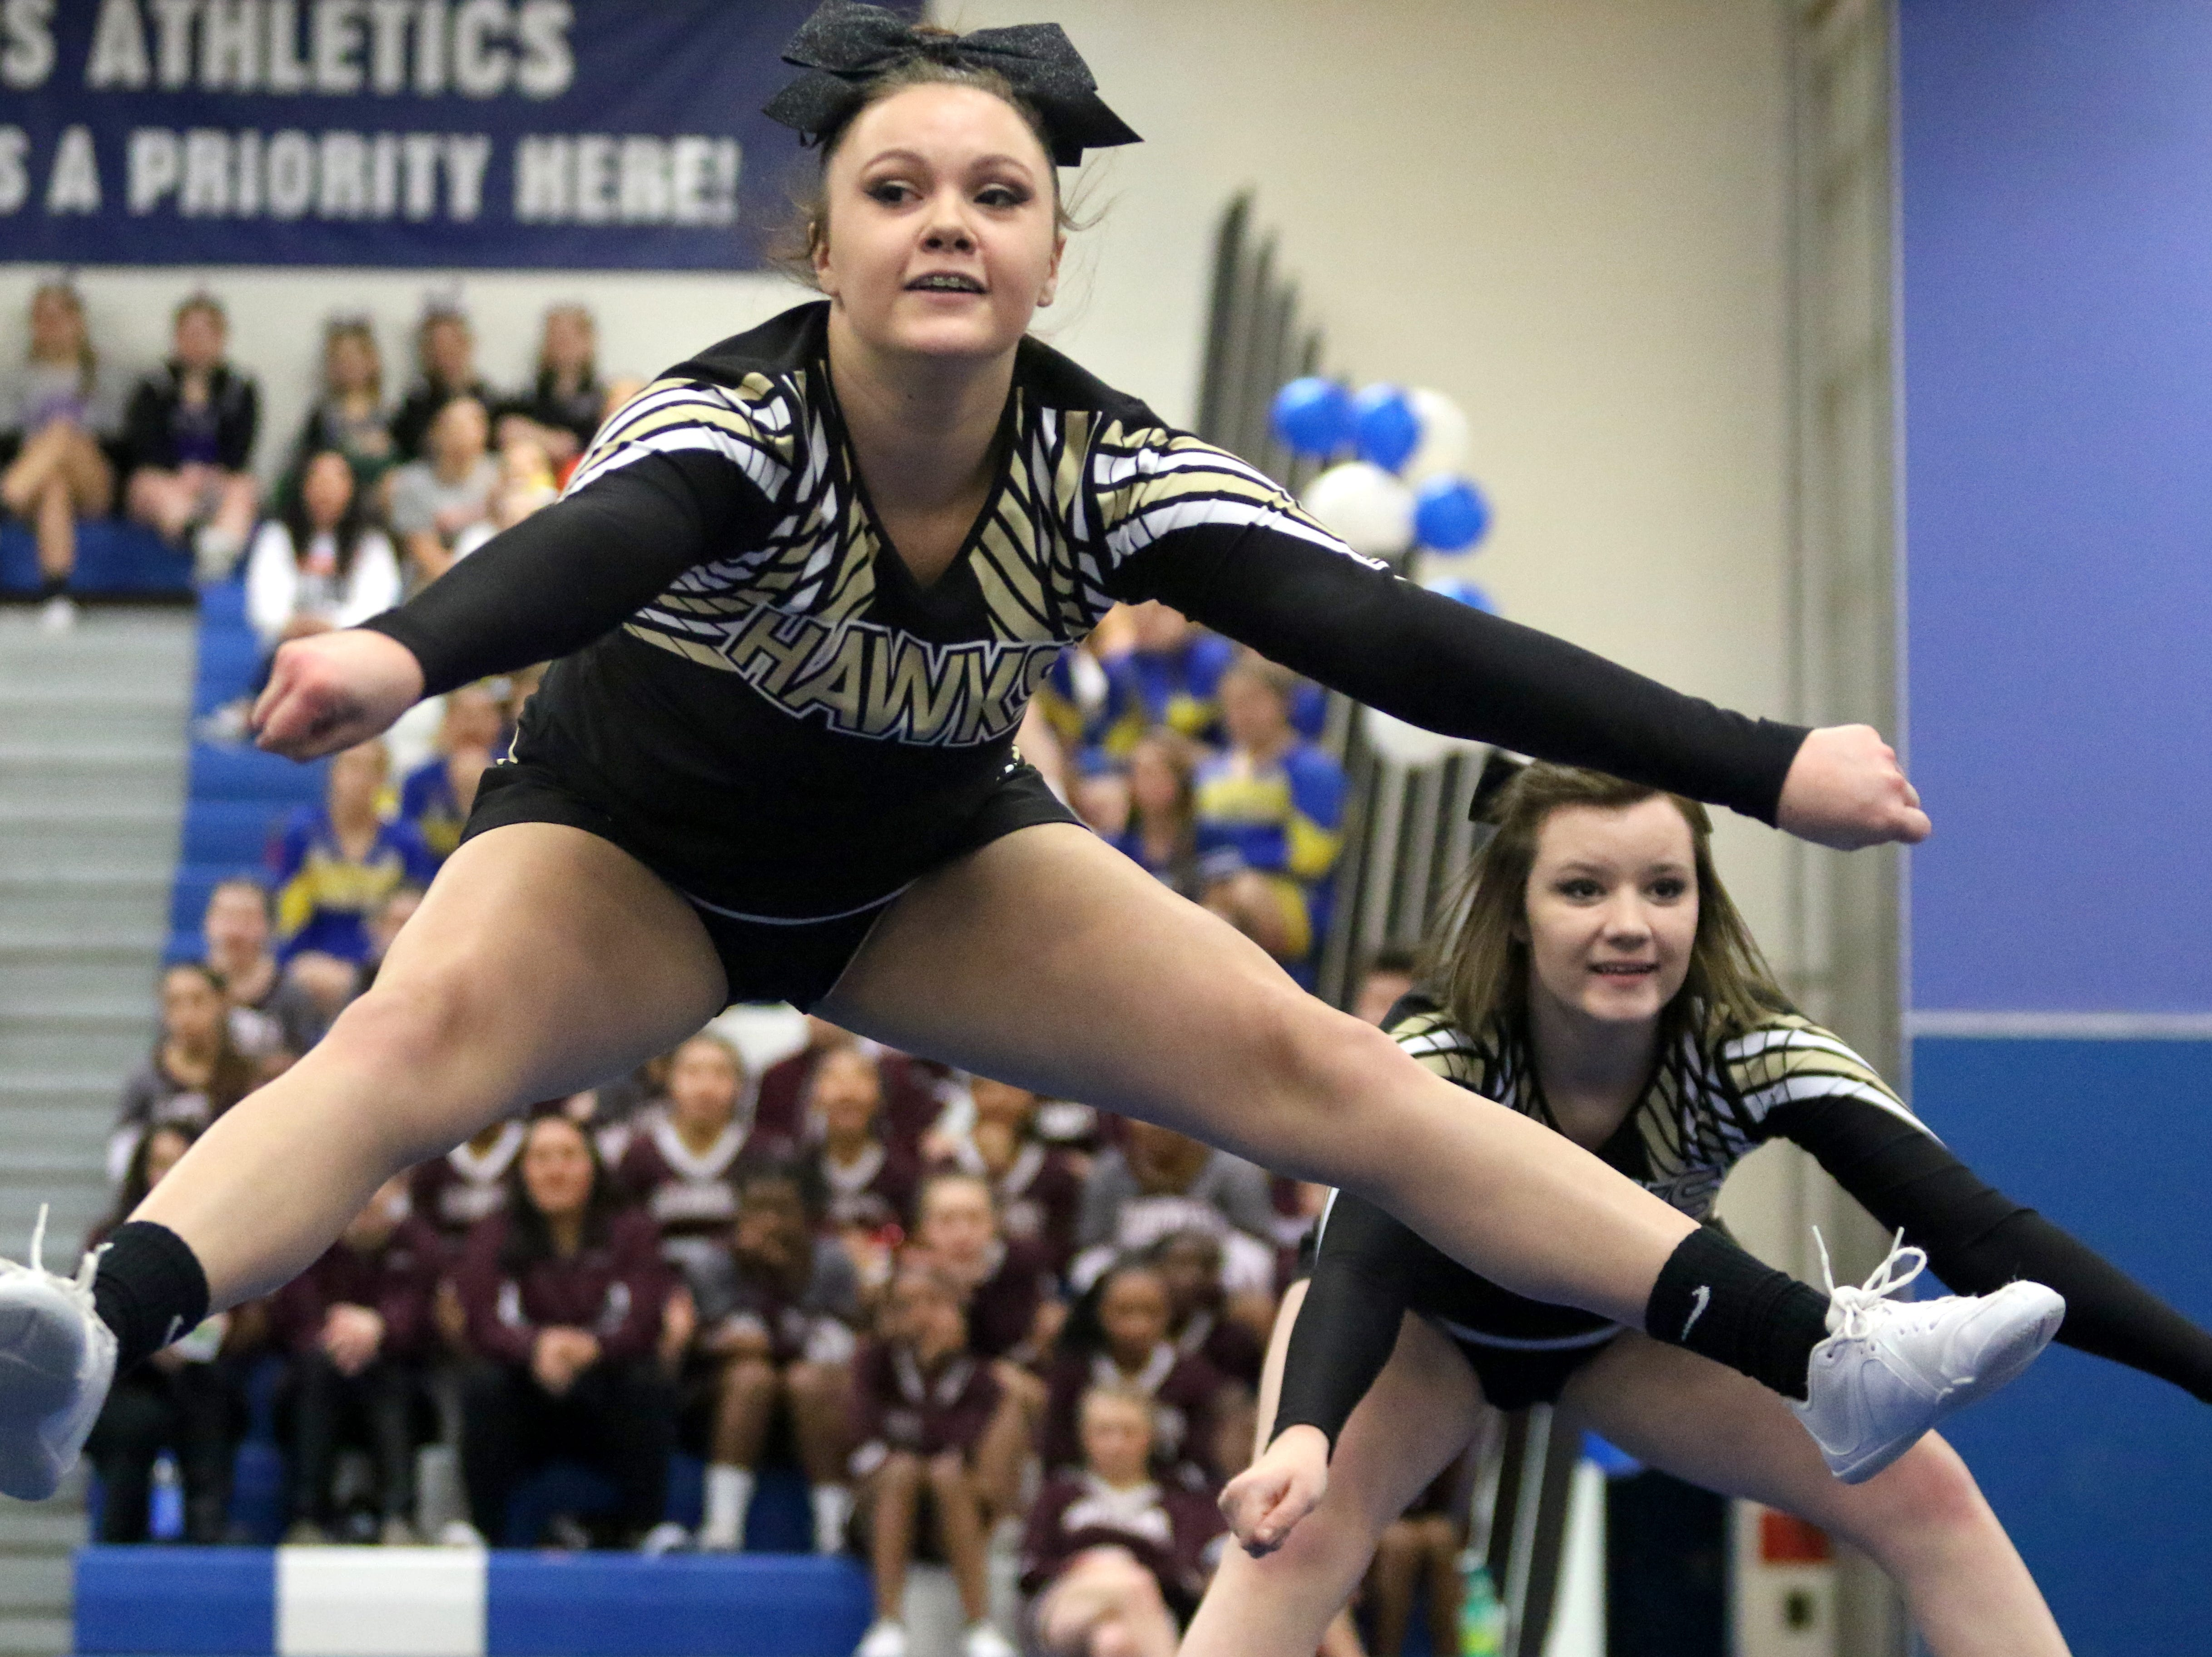 Corning varsity cheerleaders compete at the STAC Winter Cheer Championships on Feb. 16, 2019 at Horseheads Middle School.